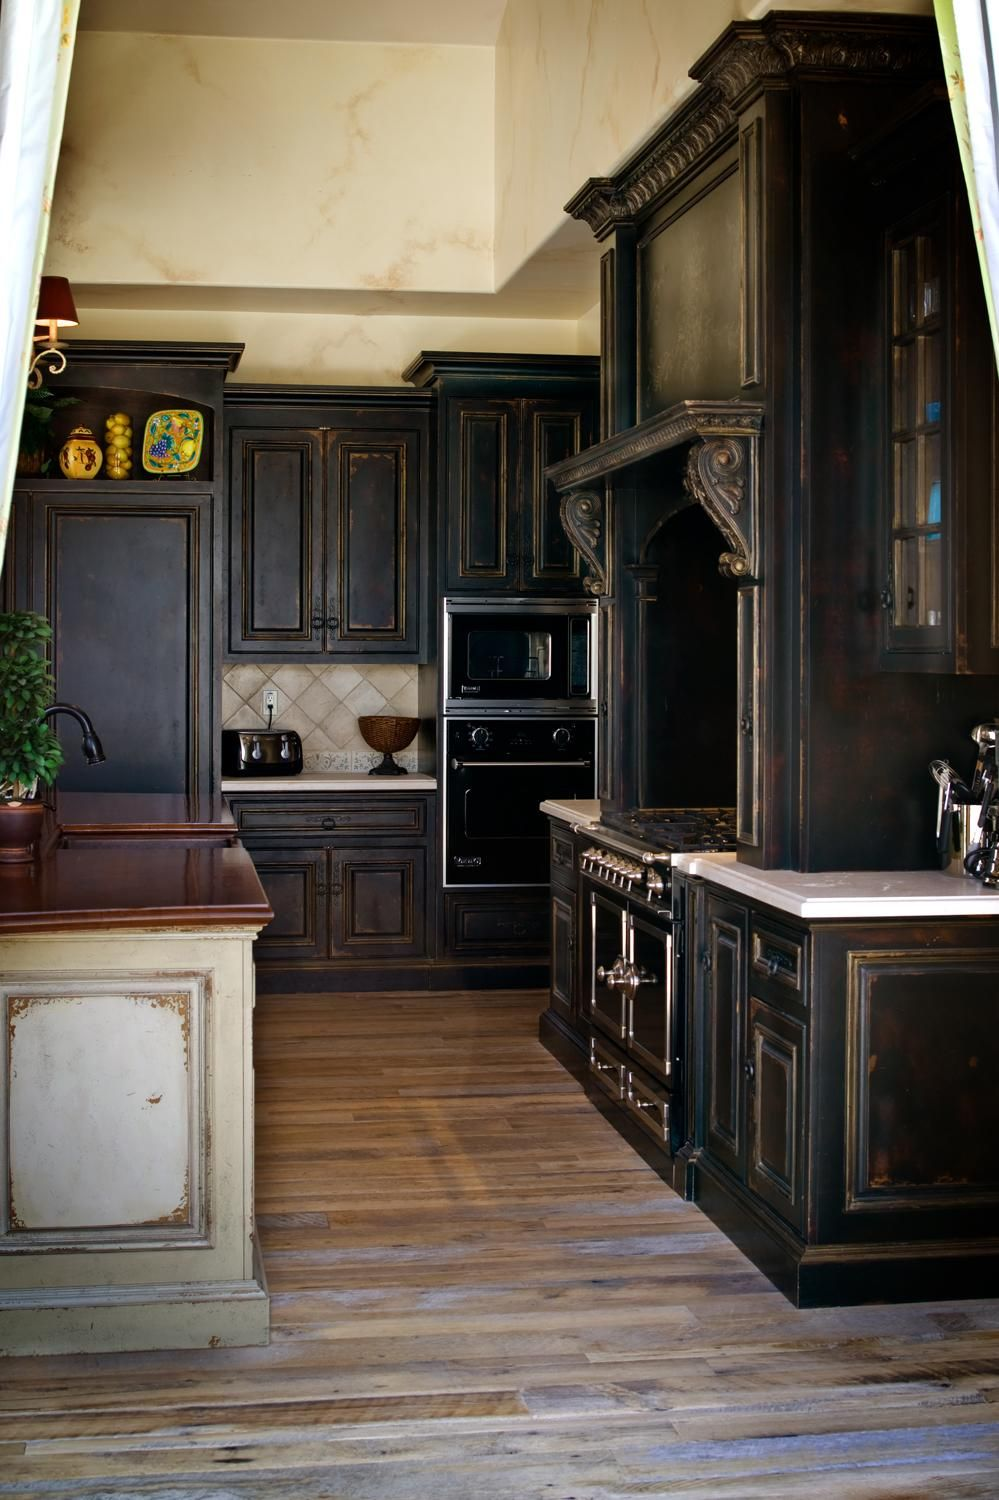 Nothing Found For Products Cabinetry Kitchen Irvine Kitchen Black Kitchen Cabinets Home Kitchens Kitchen Cabinet Colors